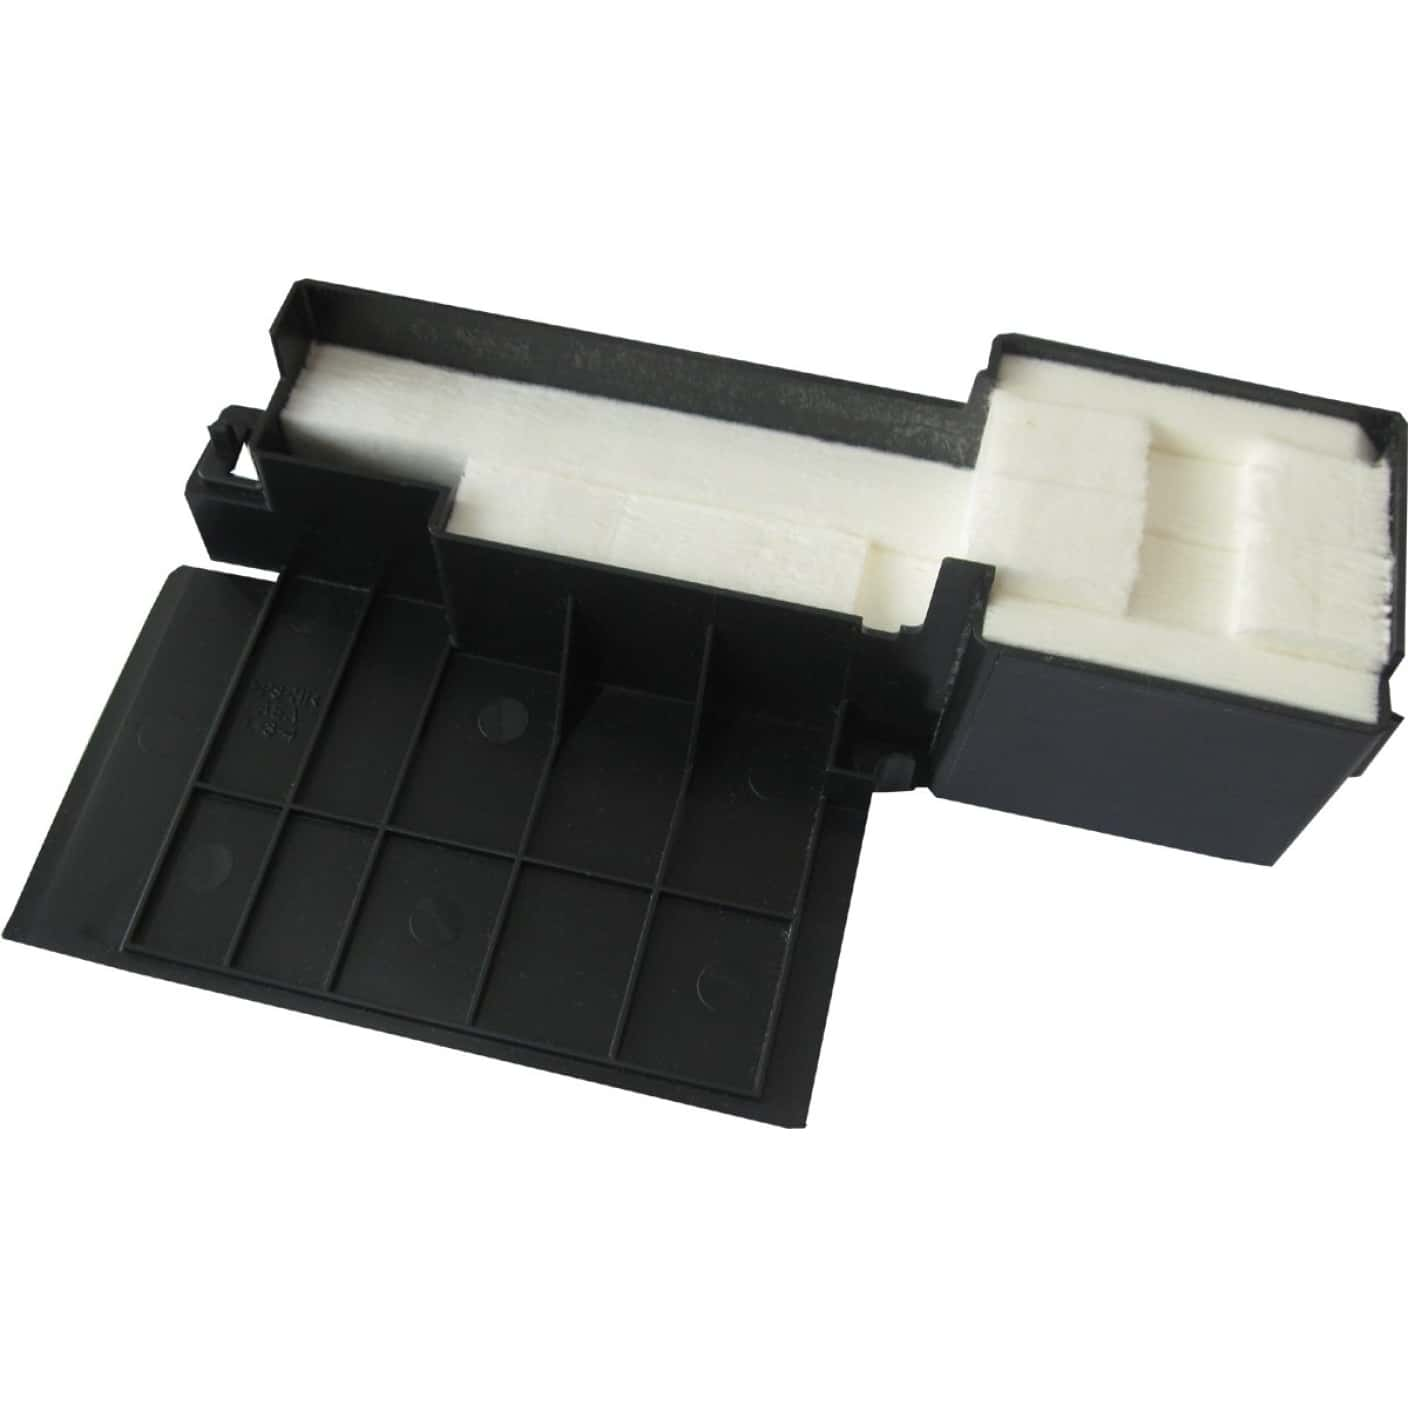 Waste Ink Pad For Epson L110 L130 L210 L220 L360 L380 L385 Printer (1627961)